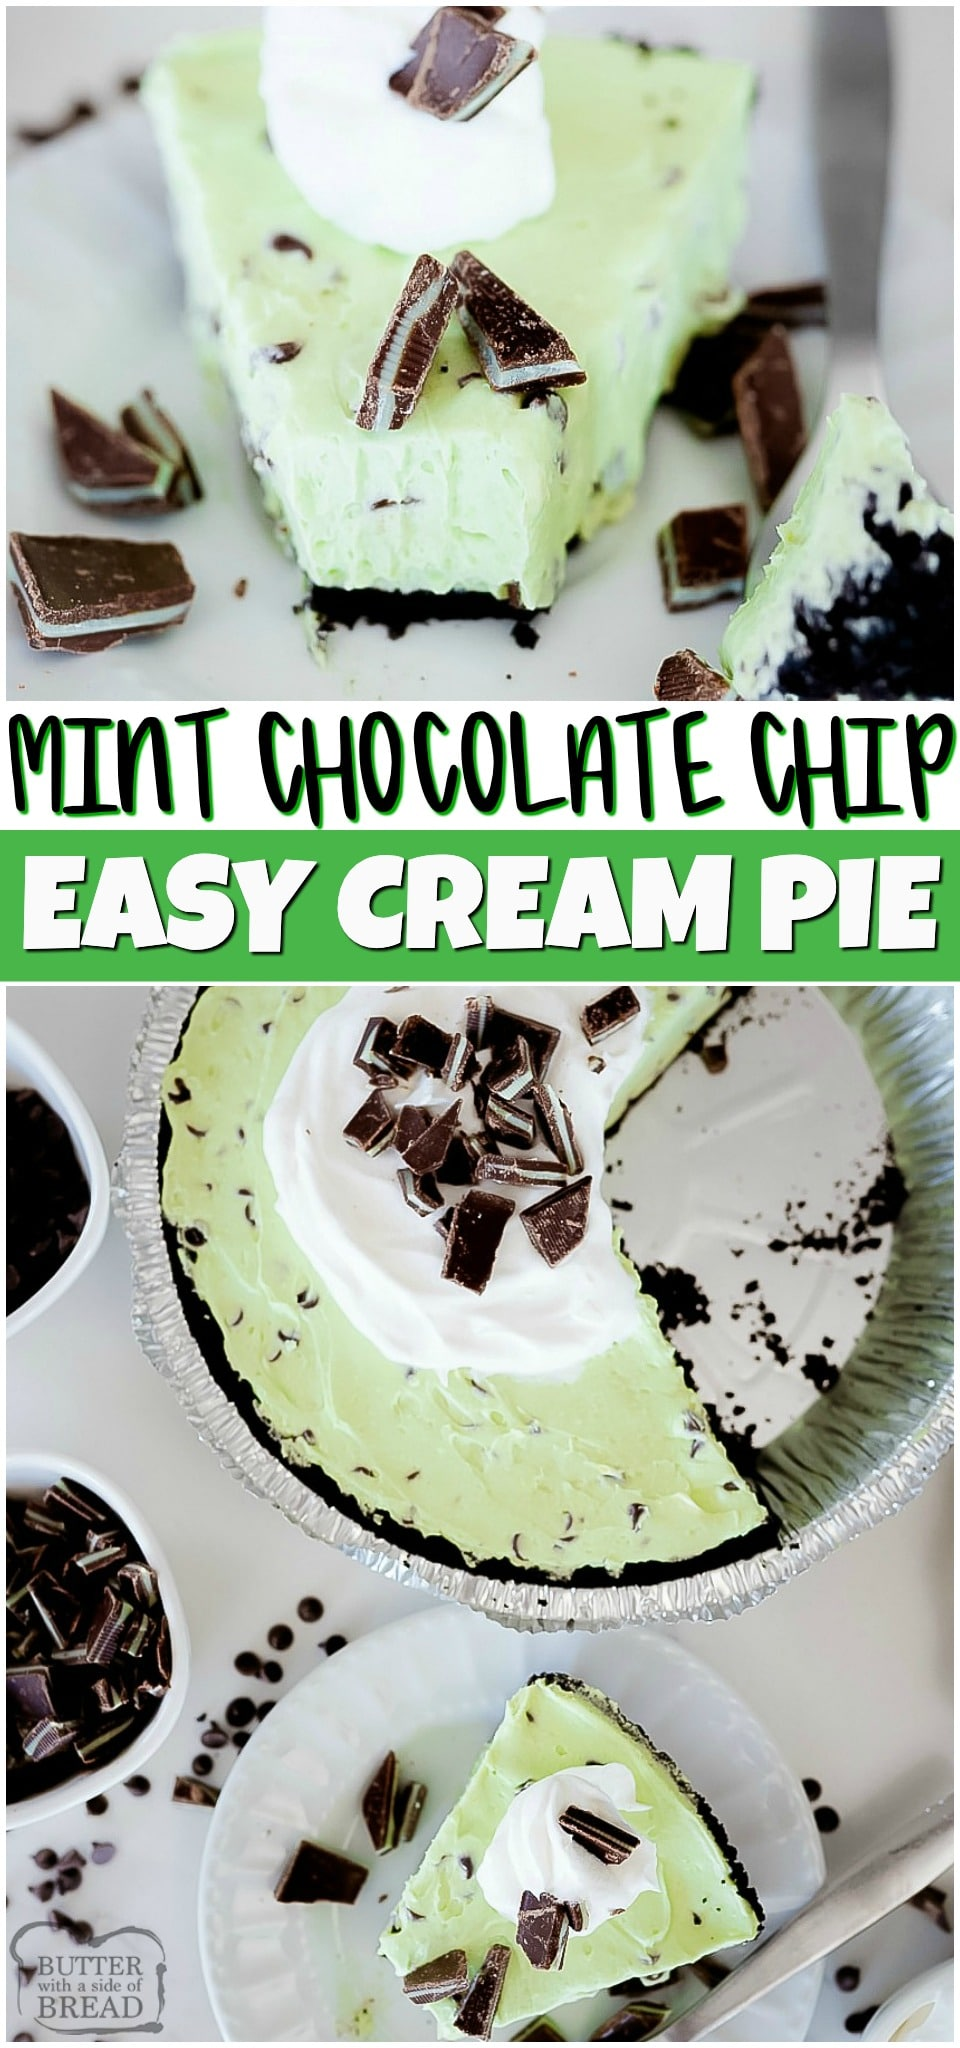 Mint Chocolate Chip Cream Pie is a creamy mint pie loaded with chocolate chips! This easy pie recipe has smooth mint cream filling mixed with chocolate chips & Andes mints all in an Oreo pie crust. #Chocolate #Mint lovers rejoice! #pie #creampie #easydessert #dessert #mintchocolate #chocolatechip #recipe from BUTTER WITH A SIDE OF BREAD